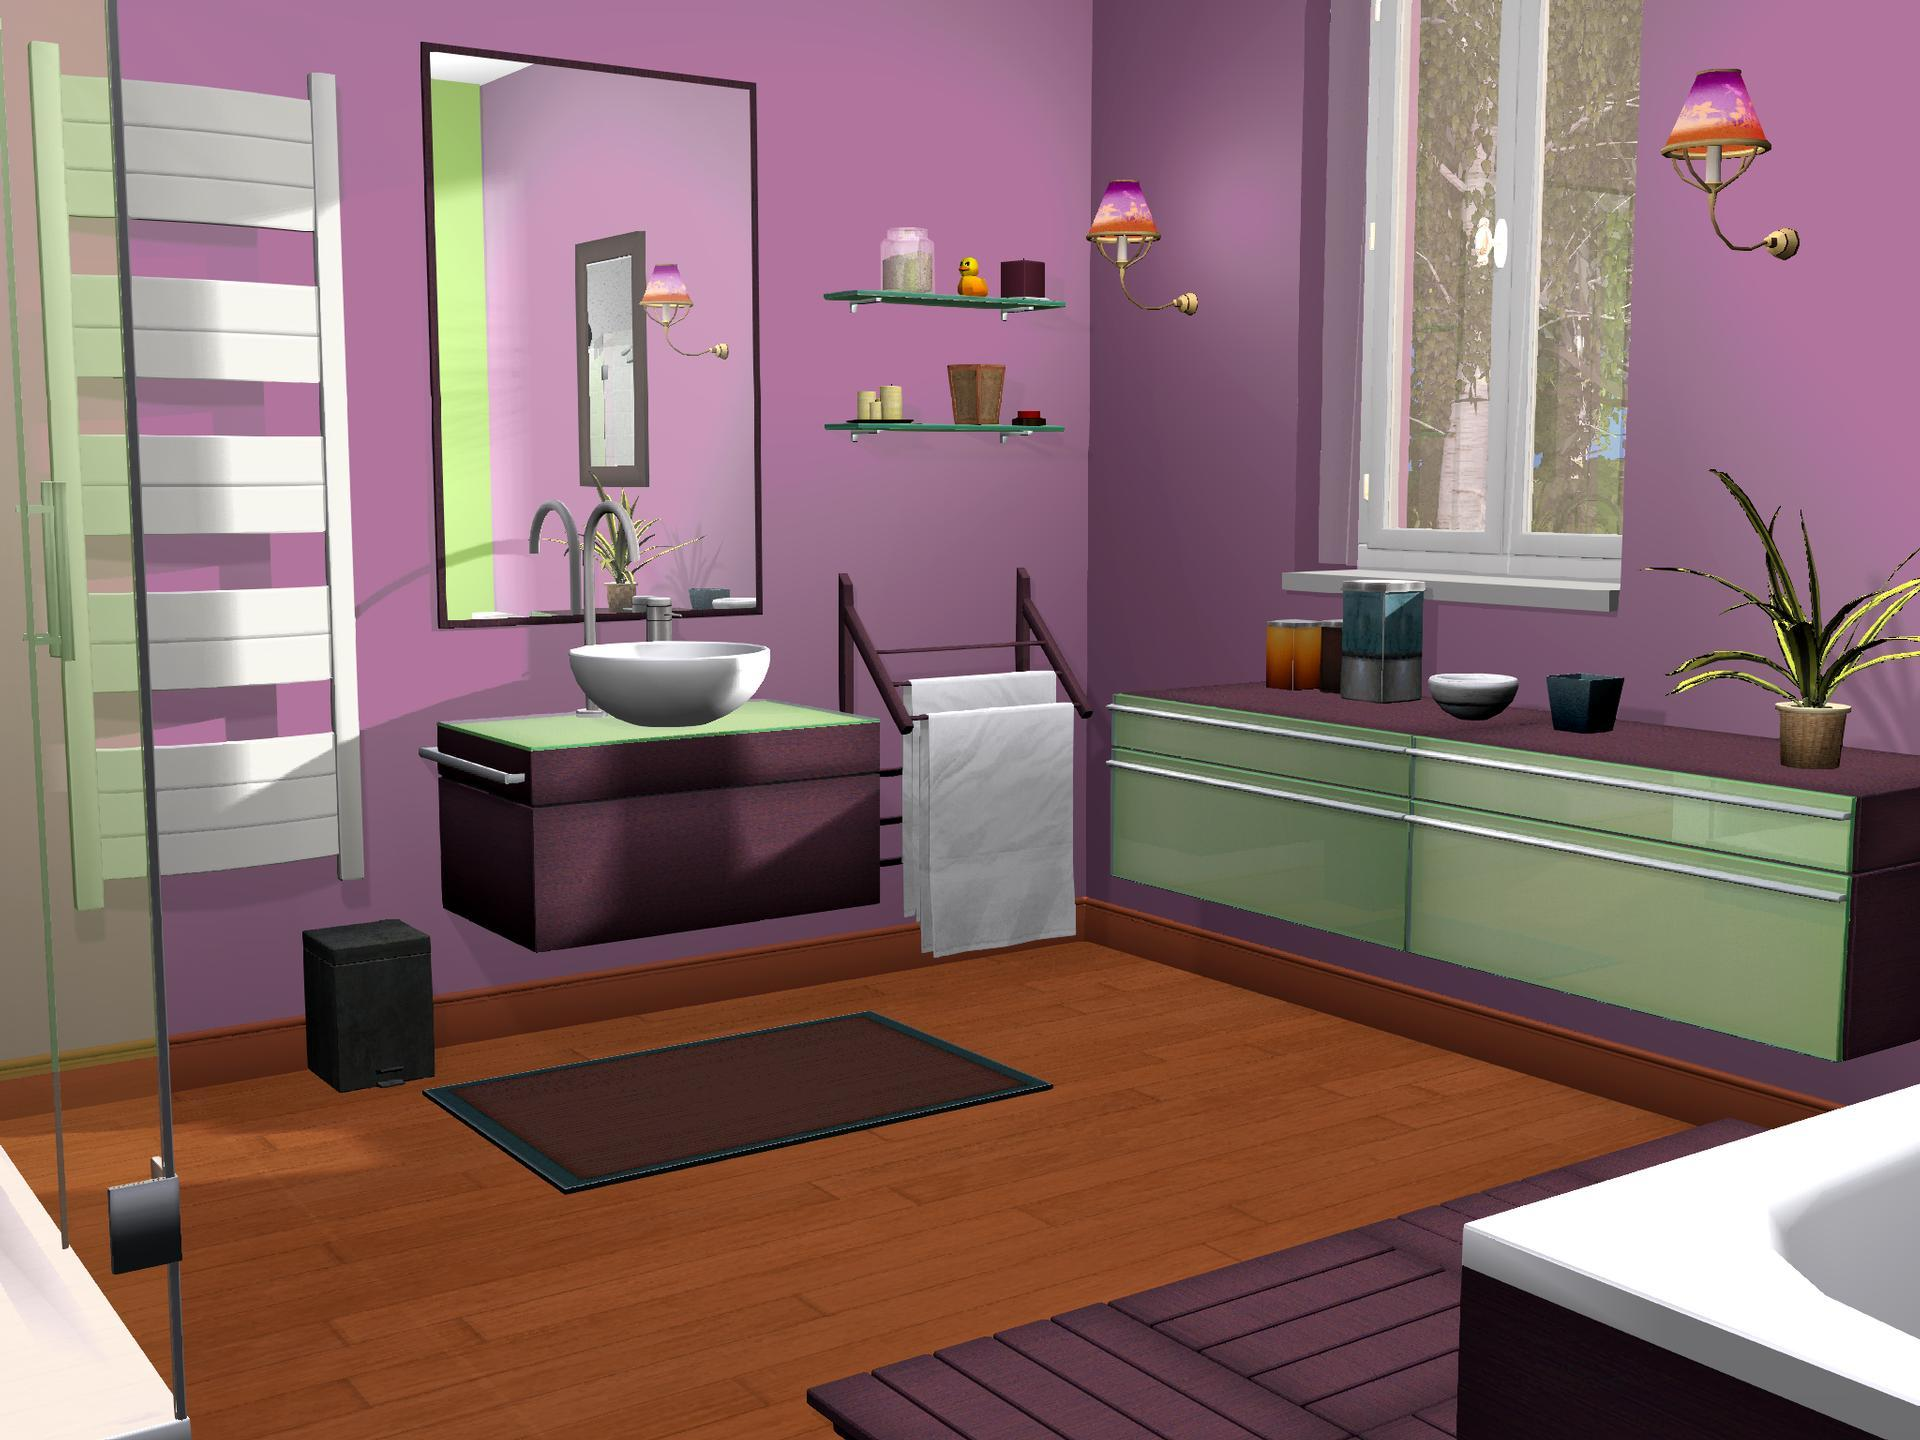 3d architecte facile - Creation de salle de bain en 3d gratuit ...